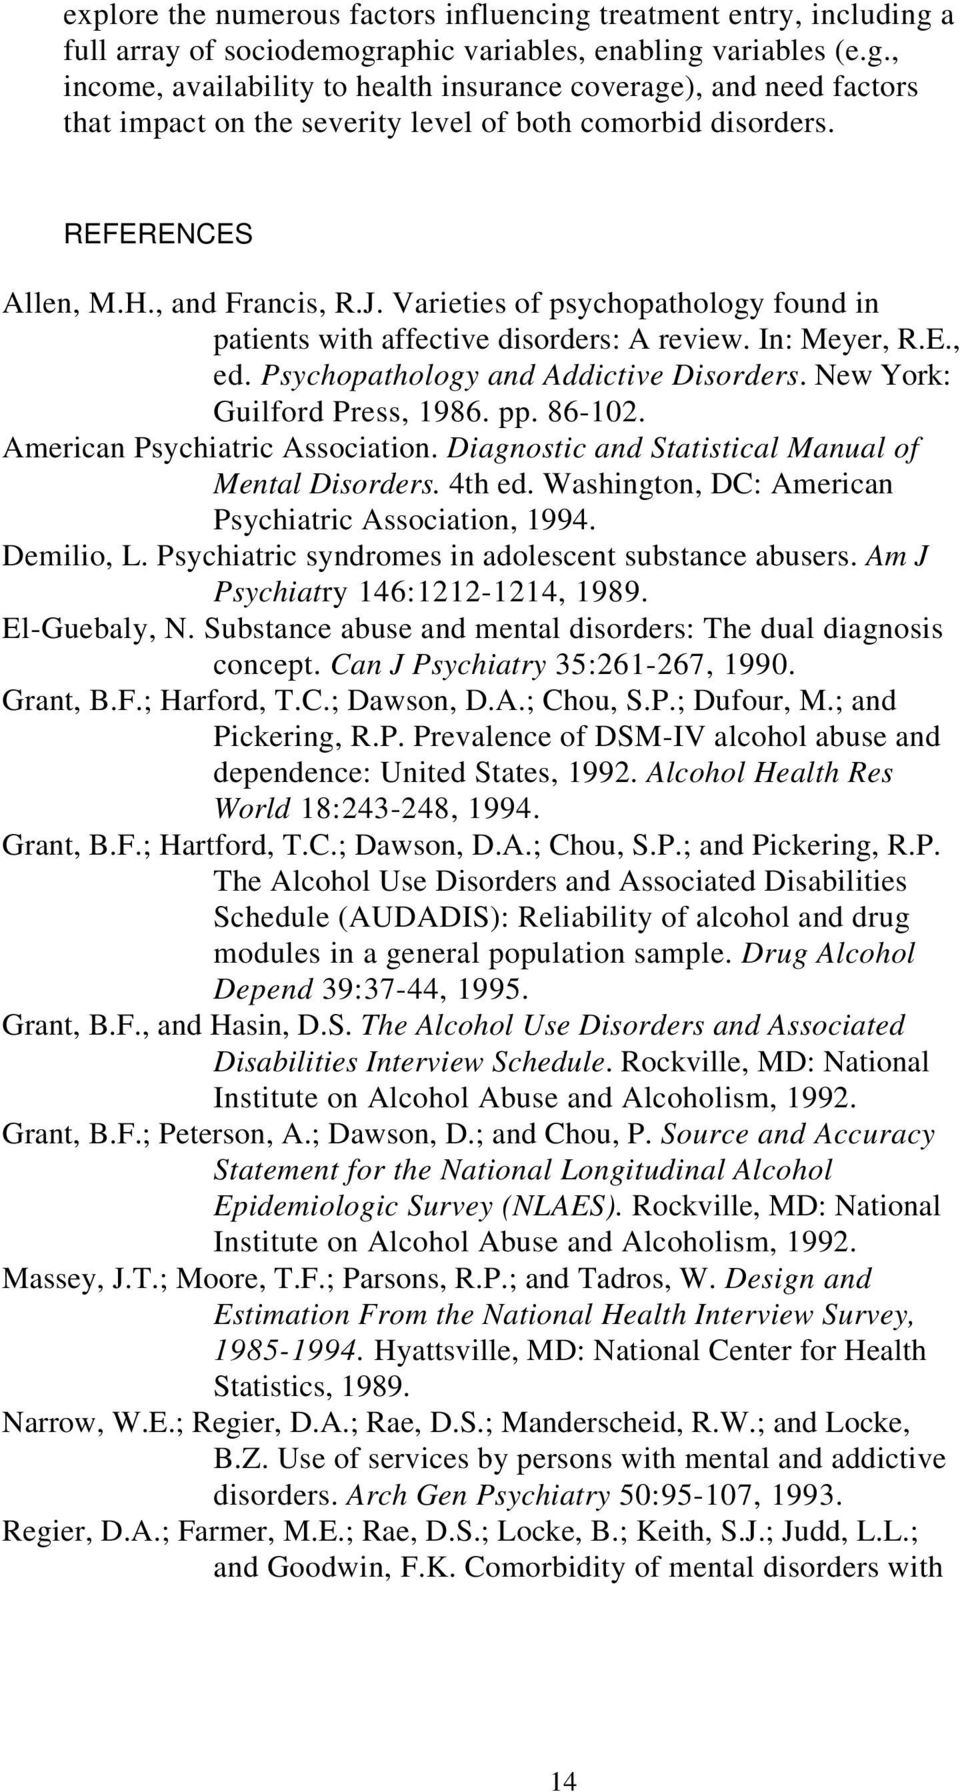 New York: Guilford Press, 1986. pp. 86-102. American Psychiatric Association. Diagnostic and Statistical Manual of Mental Disorders. 4th ed. Washington, DC: American Psychiatric Association, 1994.